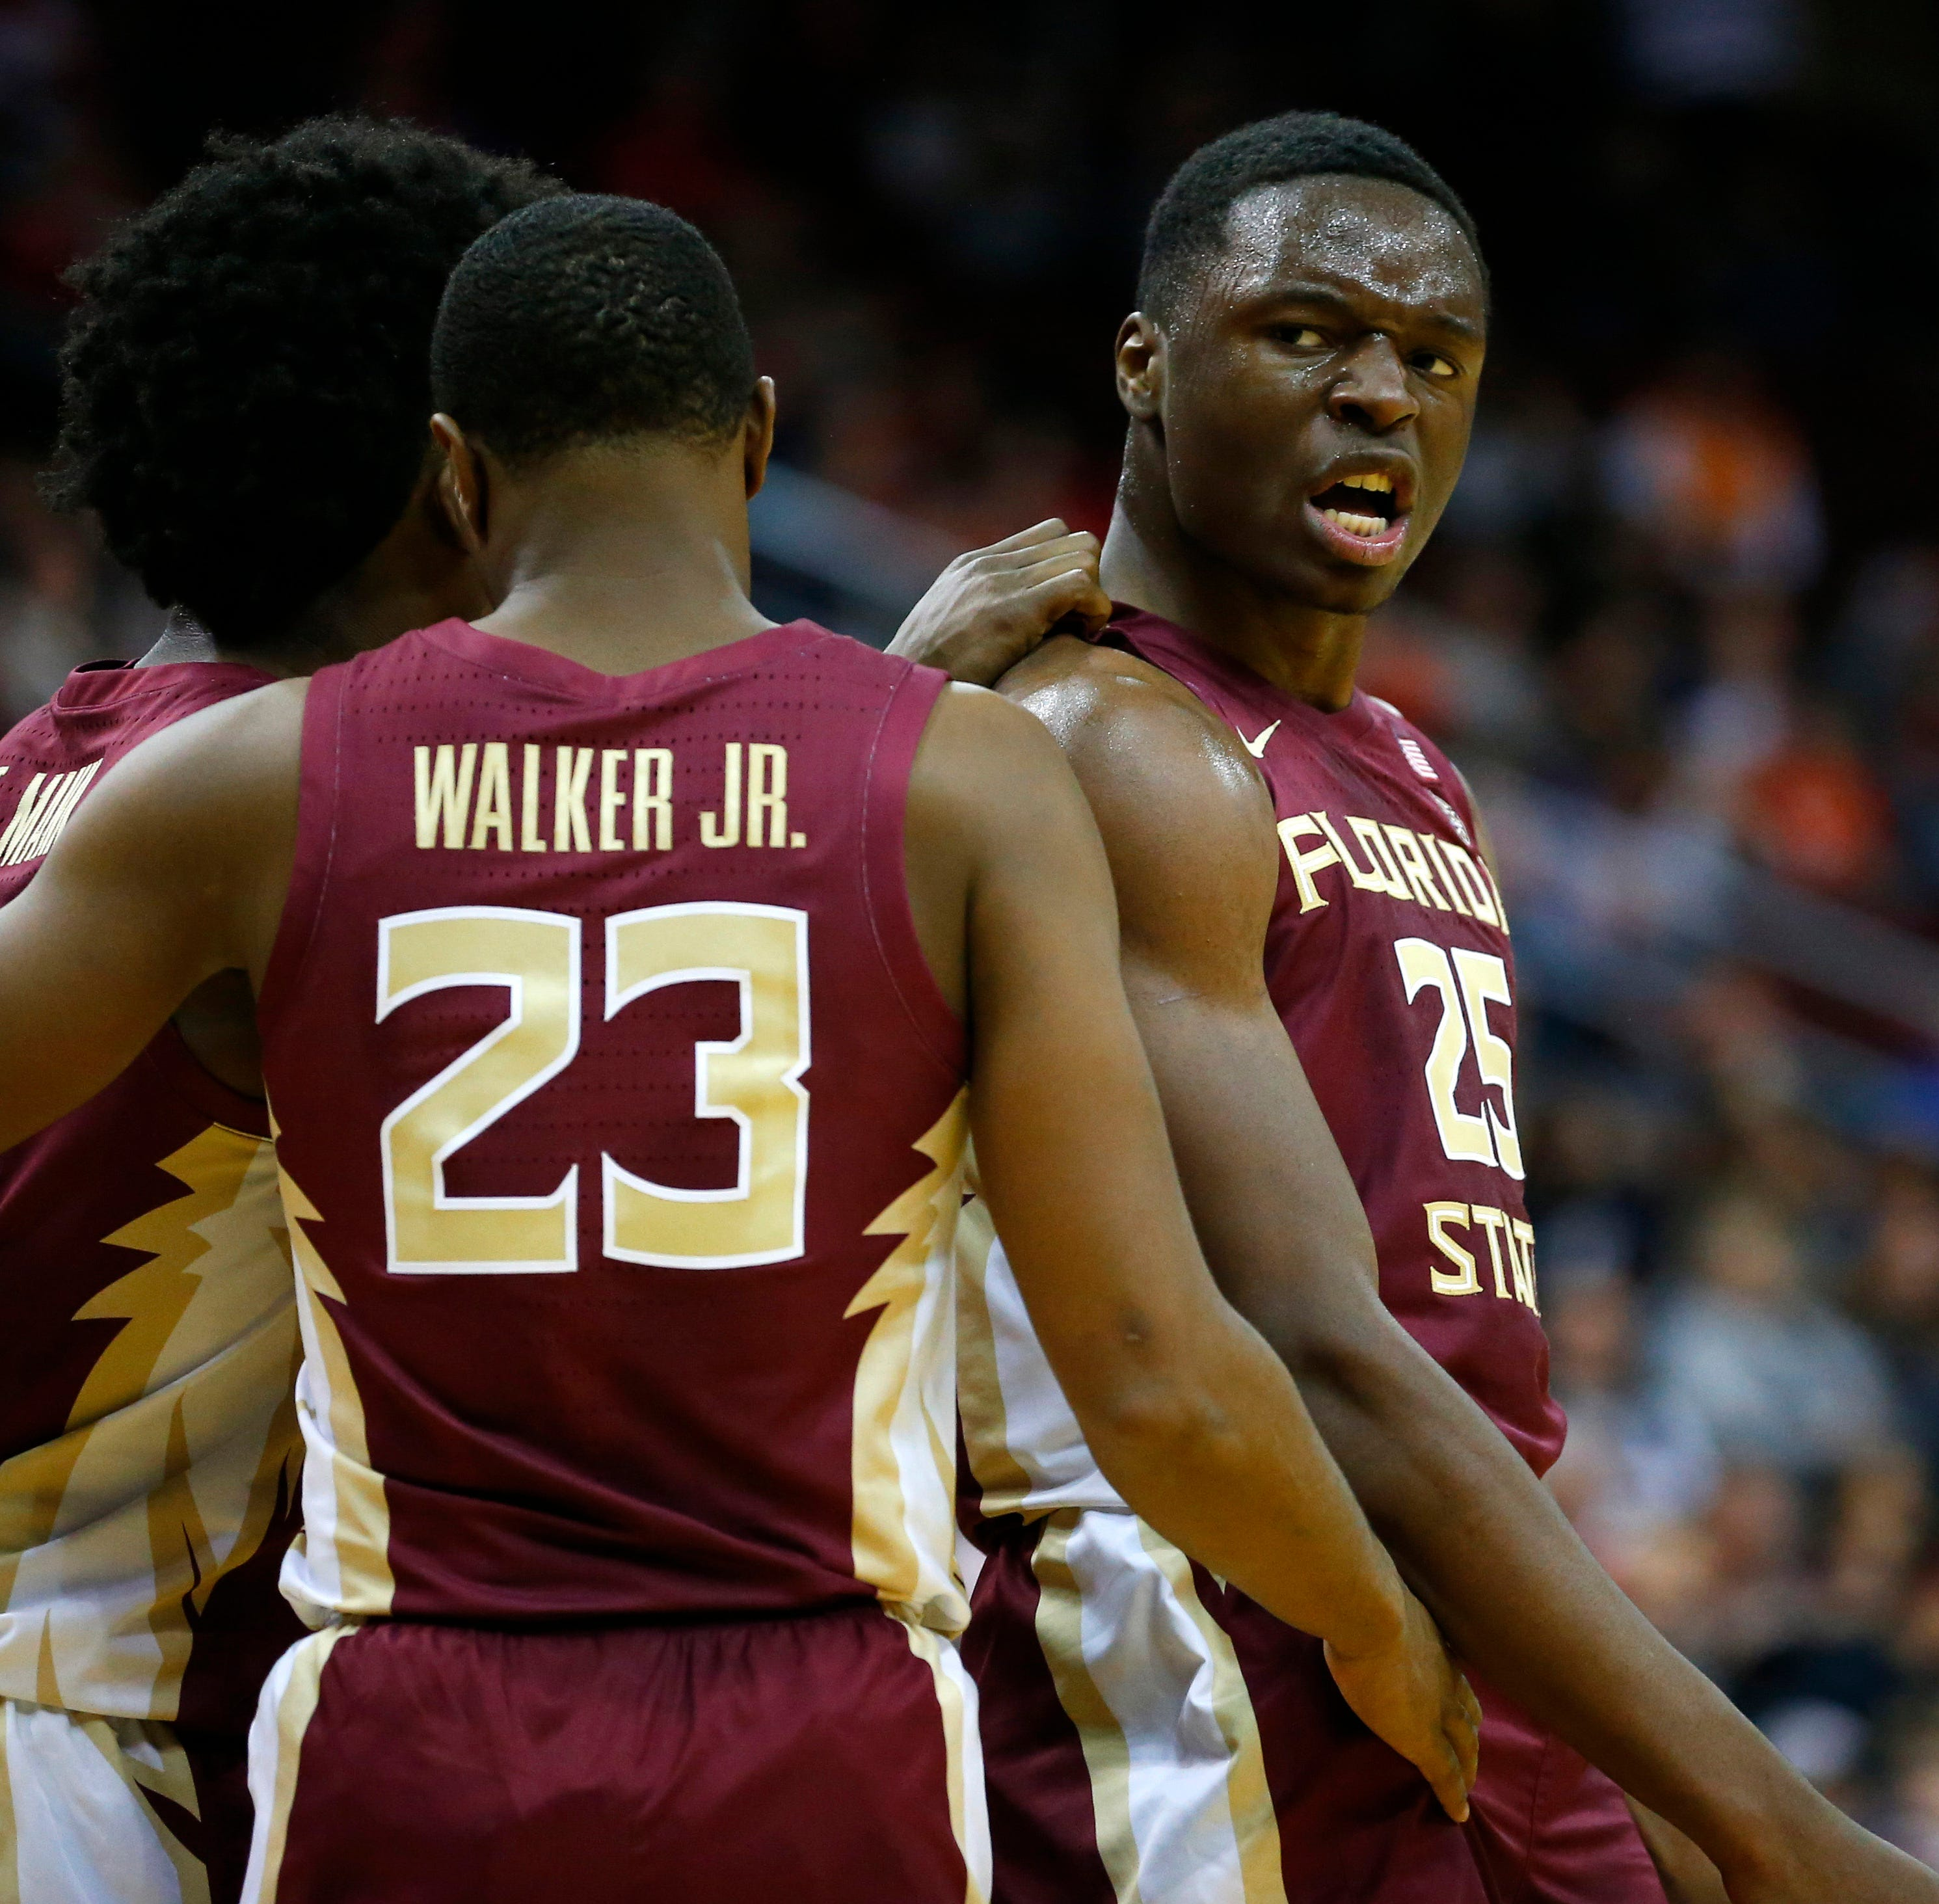 Mann scores 20 as No. 11 Florida State beats UConn 79-71